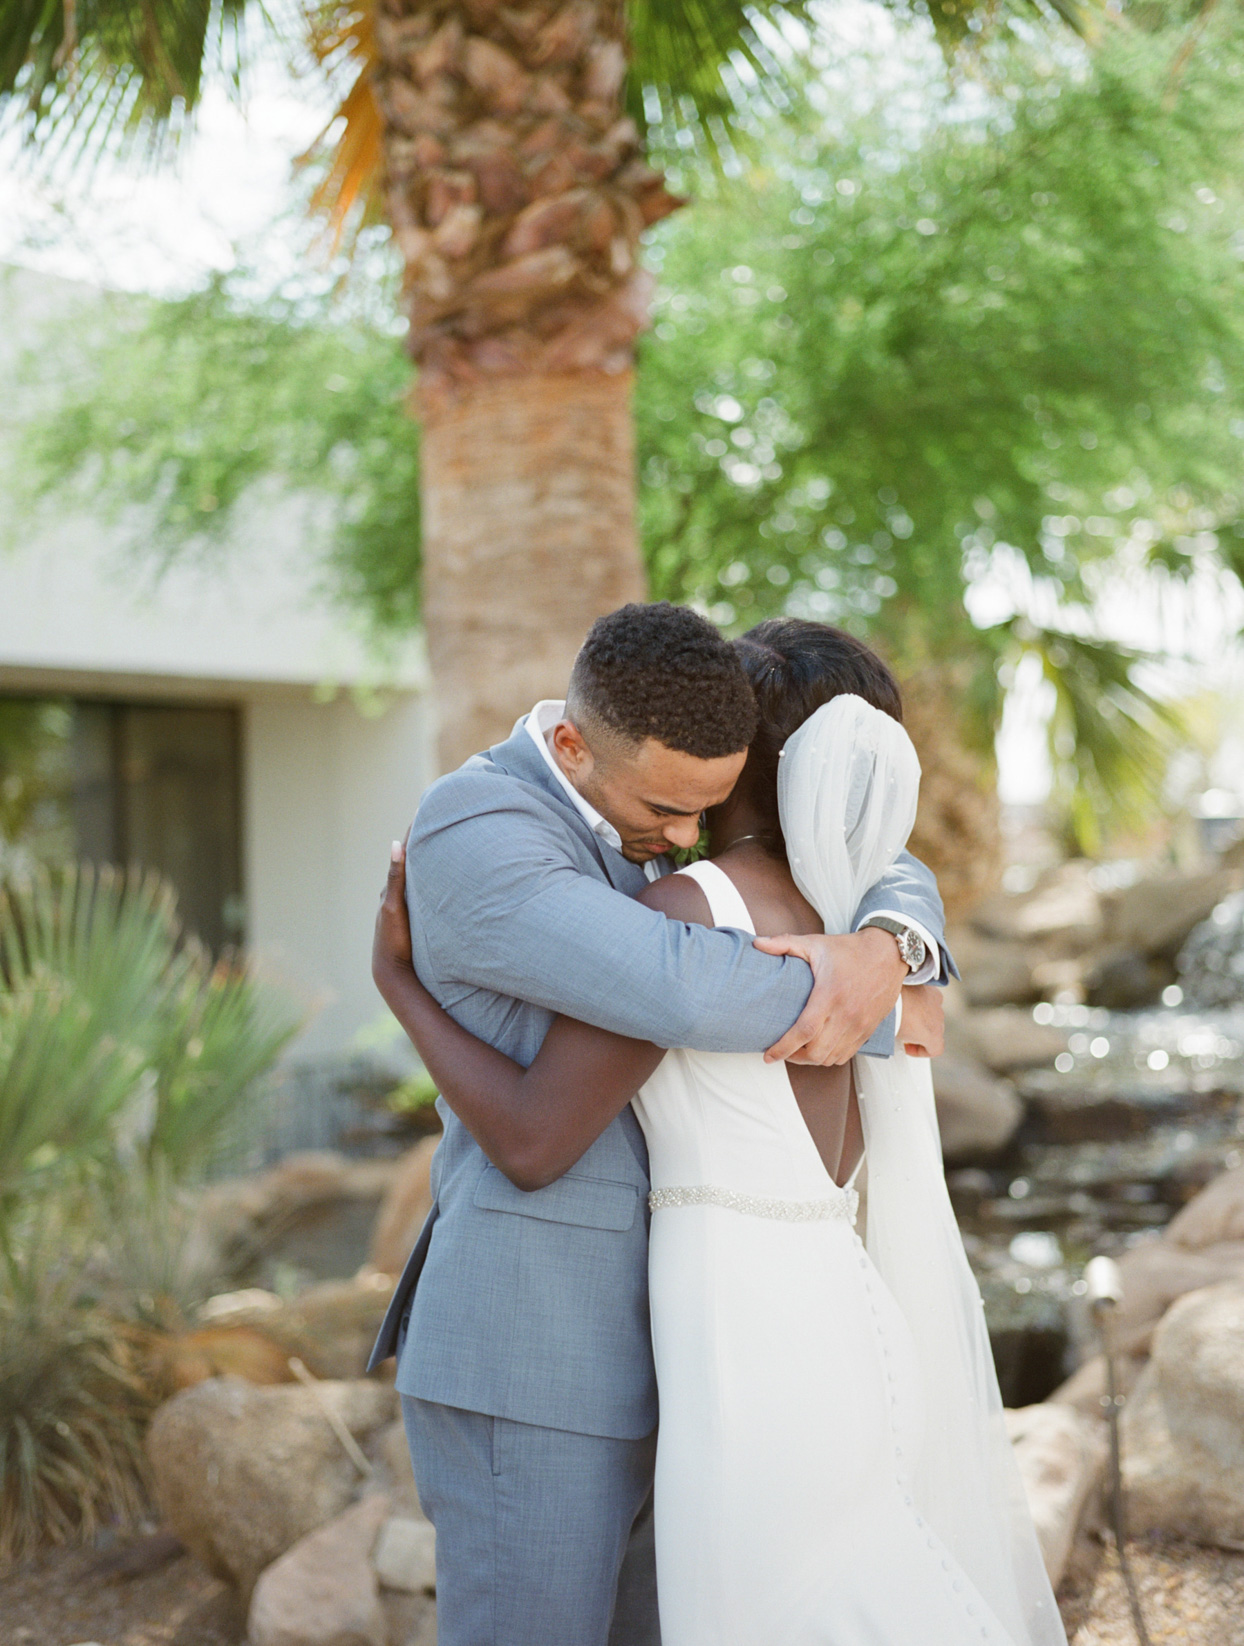 couple embracing during private wedding vows